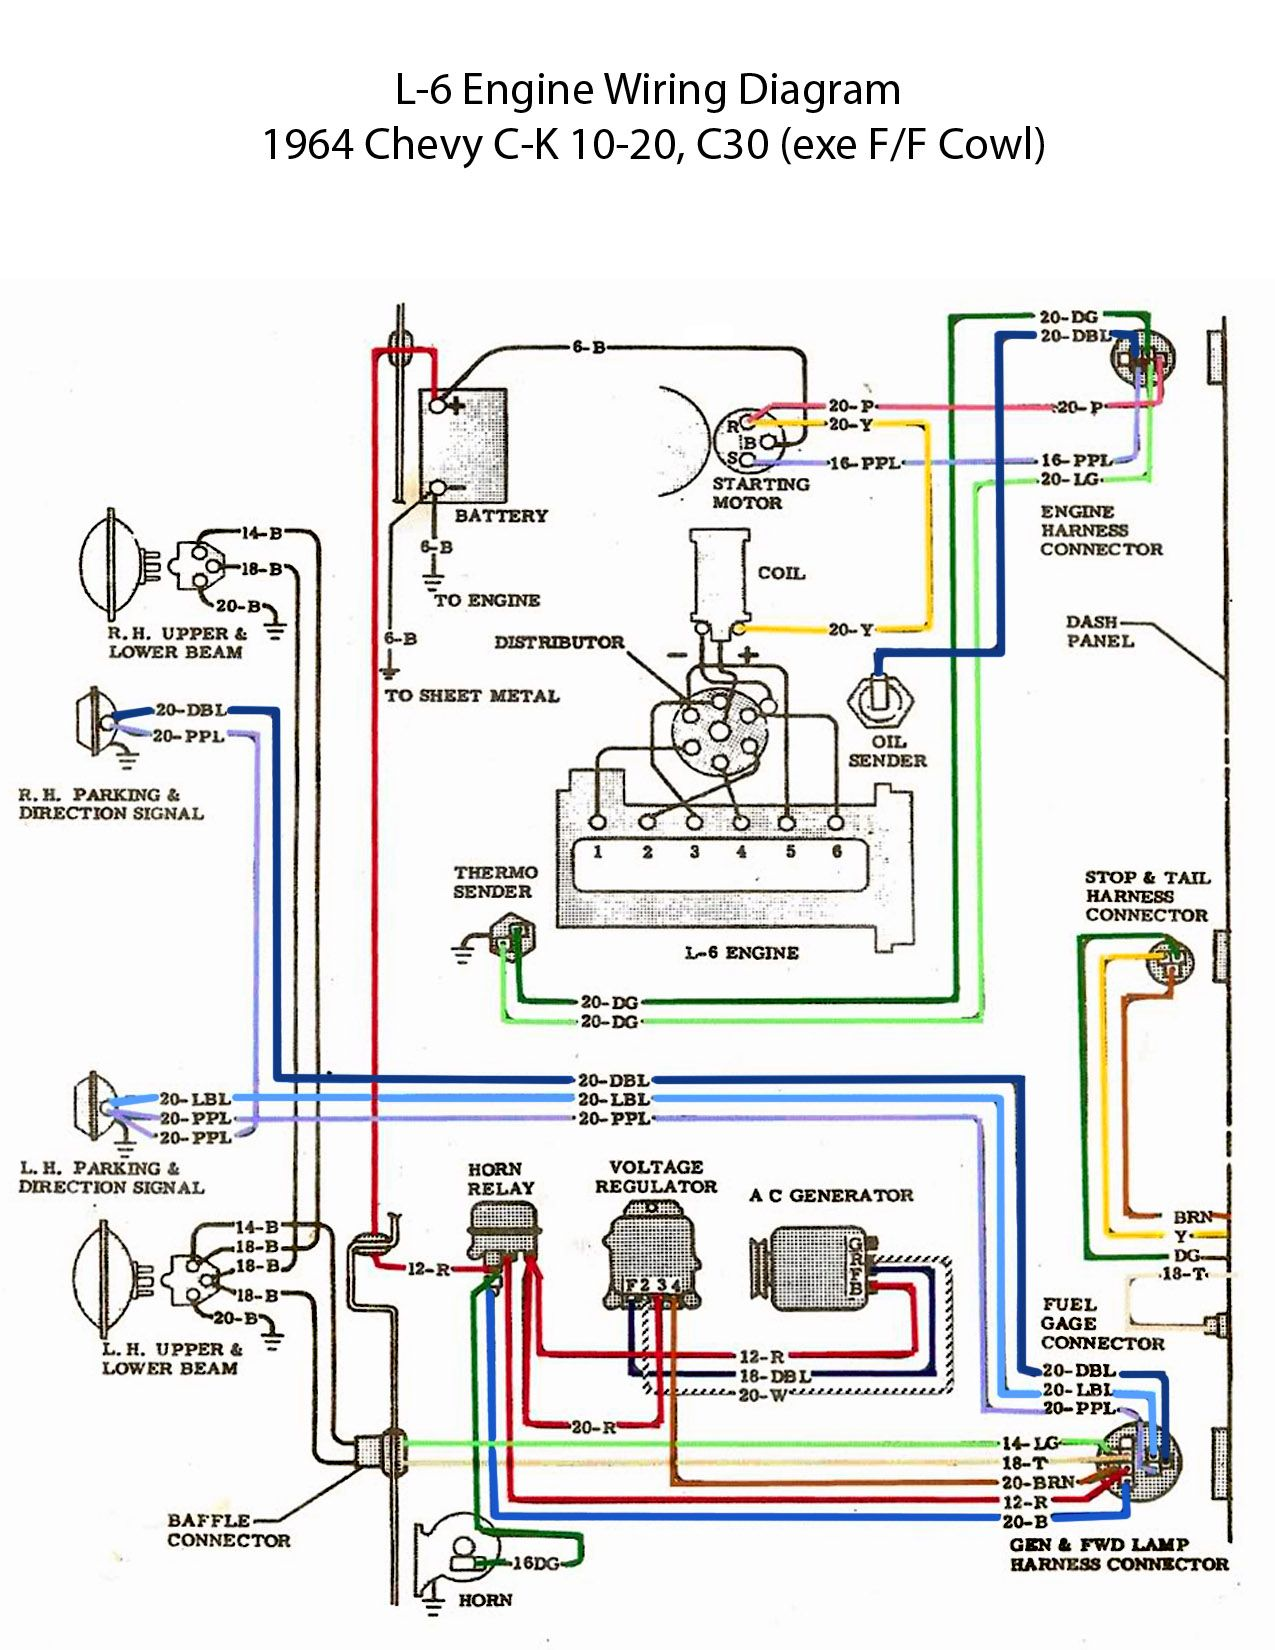 electric l 6 engine wiring diagram 60s chevy c10 wiring rh pinterest com  1972 chevy truck engine wiring harness 1986 chevy truck engine wiring  harness